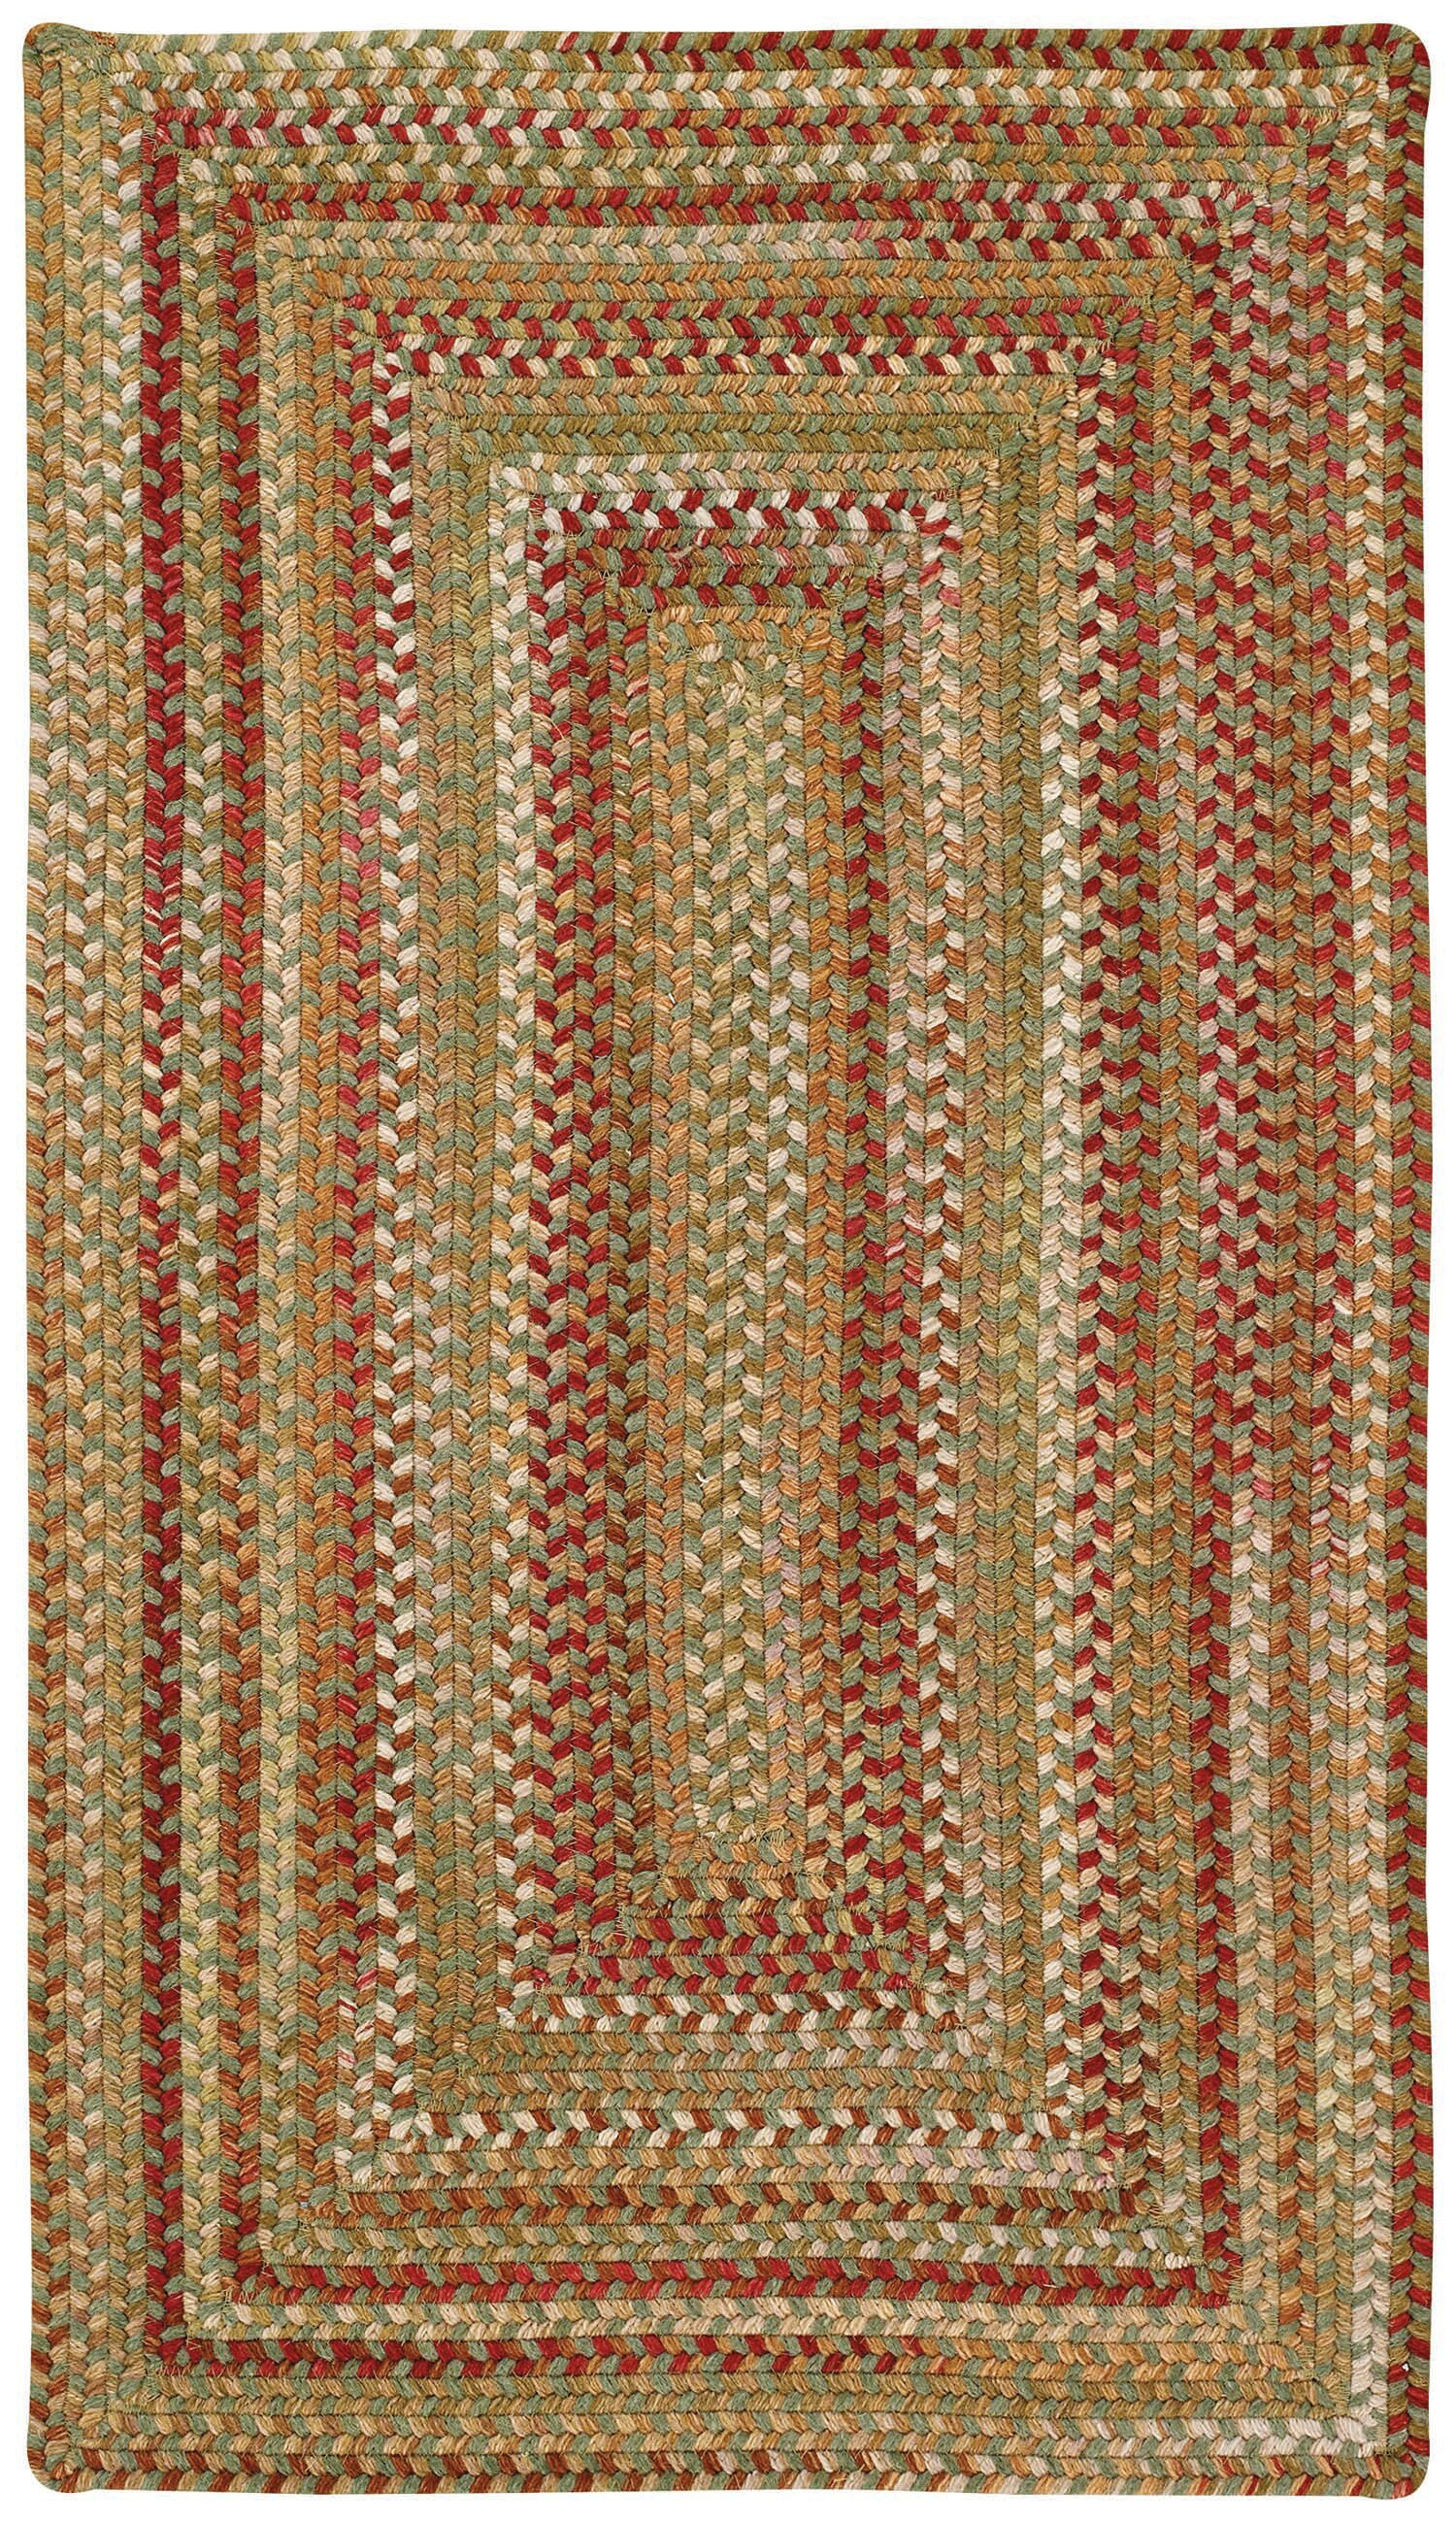 Holcombe Sage Red Hues Area Rug Rug Size: Concentric Square 3'